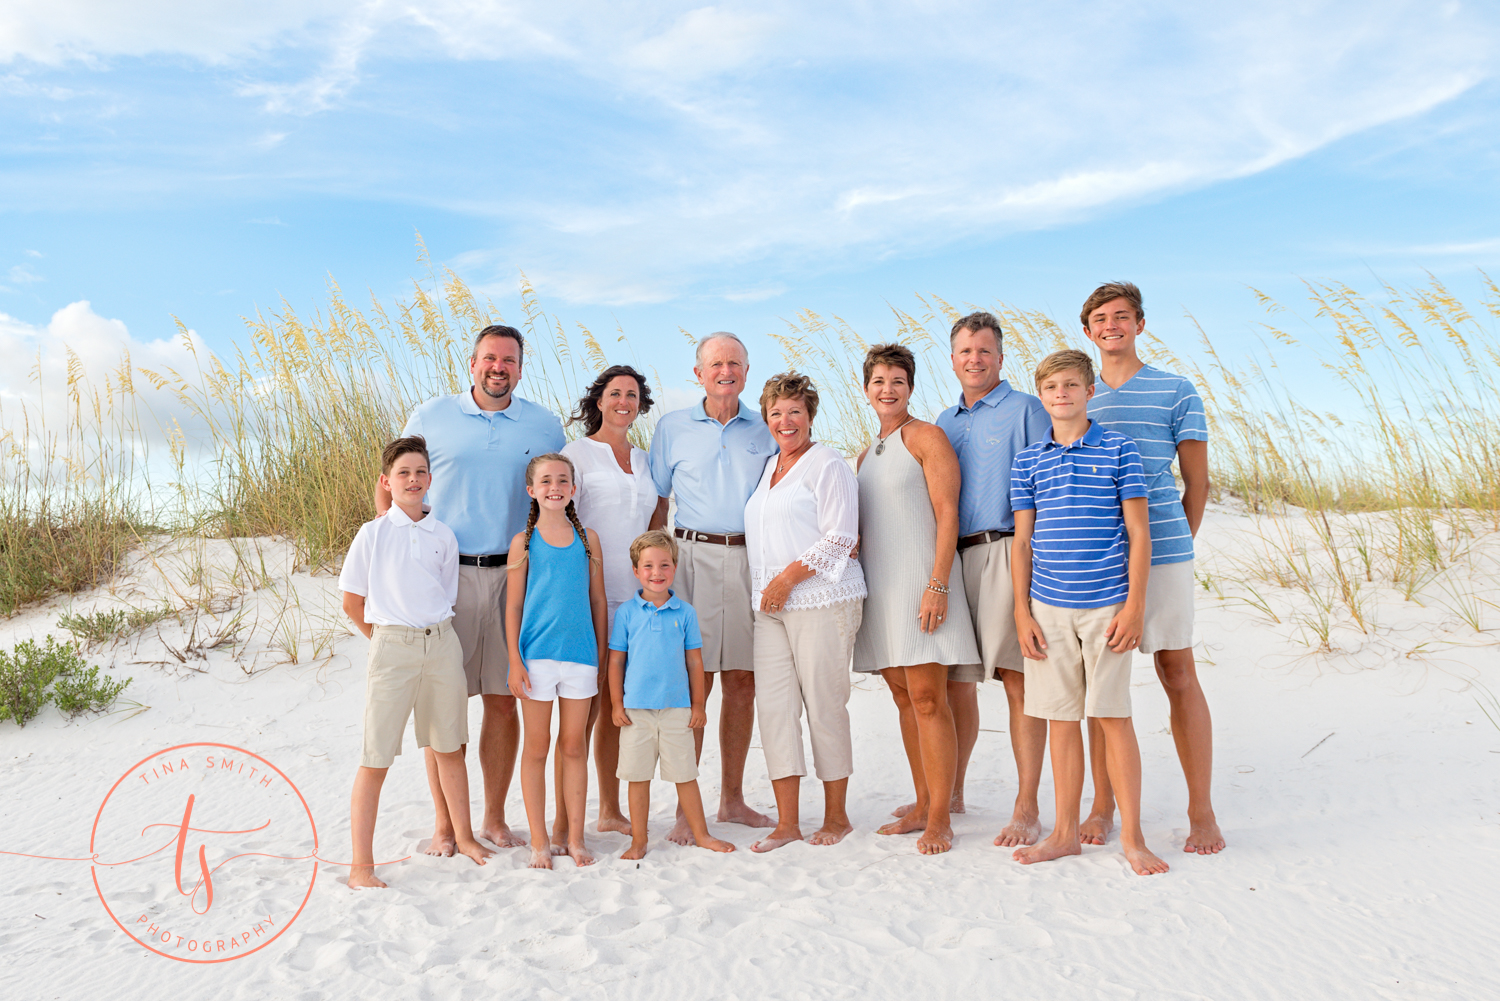 large extended family posing on the beach in destin for generational portrait